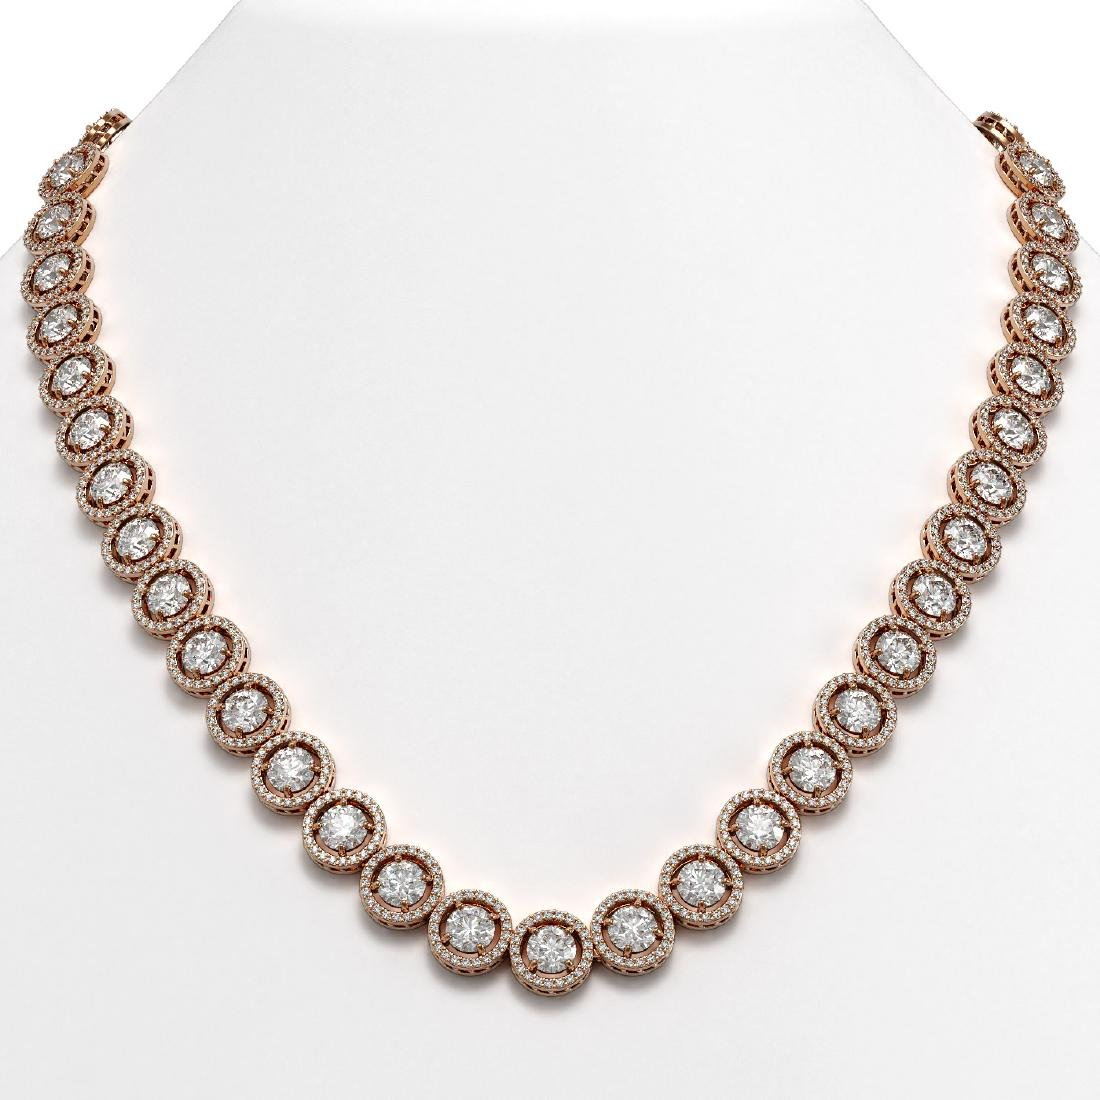 30.78 CTW Diamond Designer Necklace 18K Rose Gold